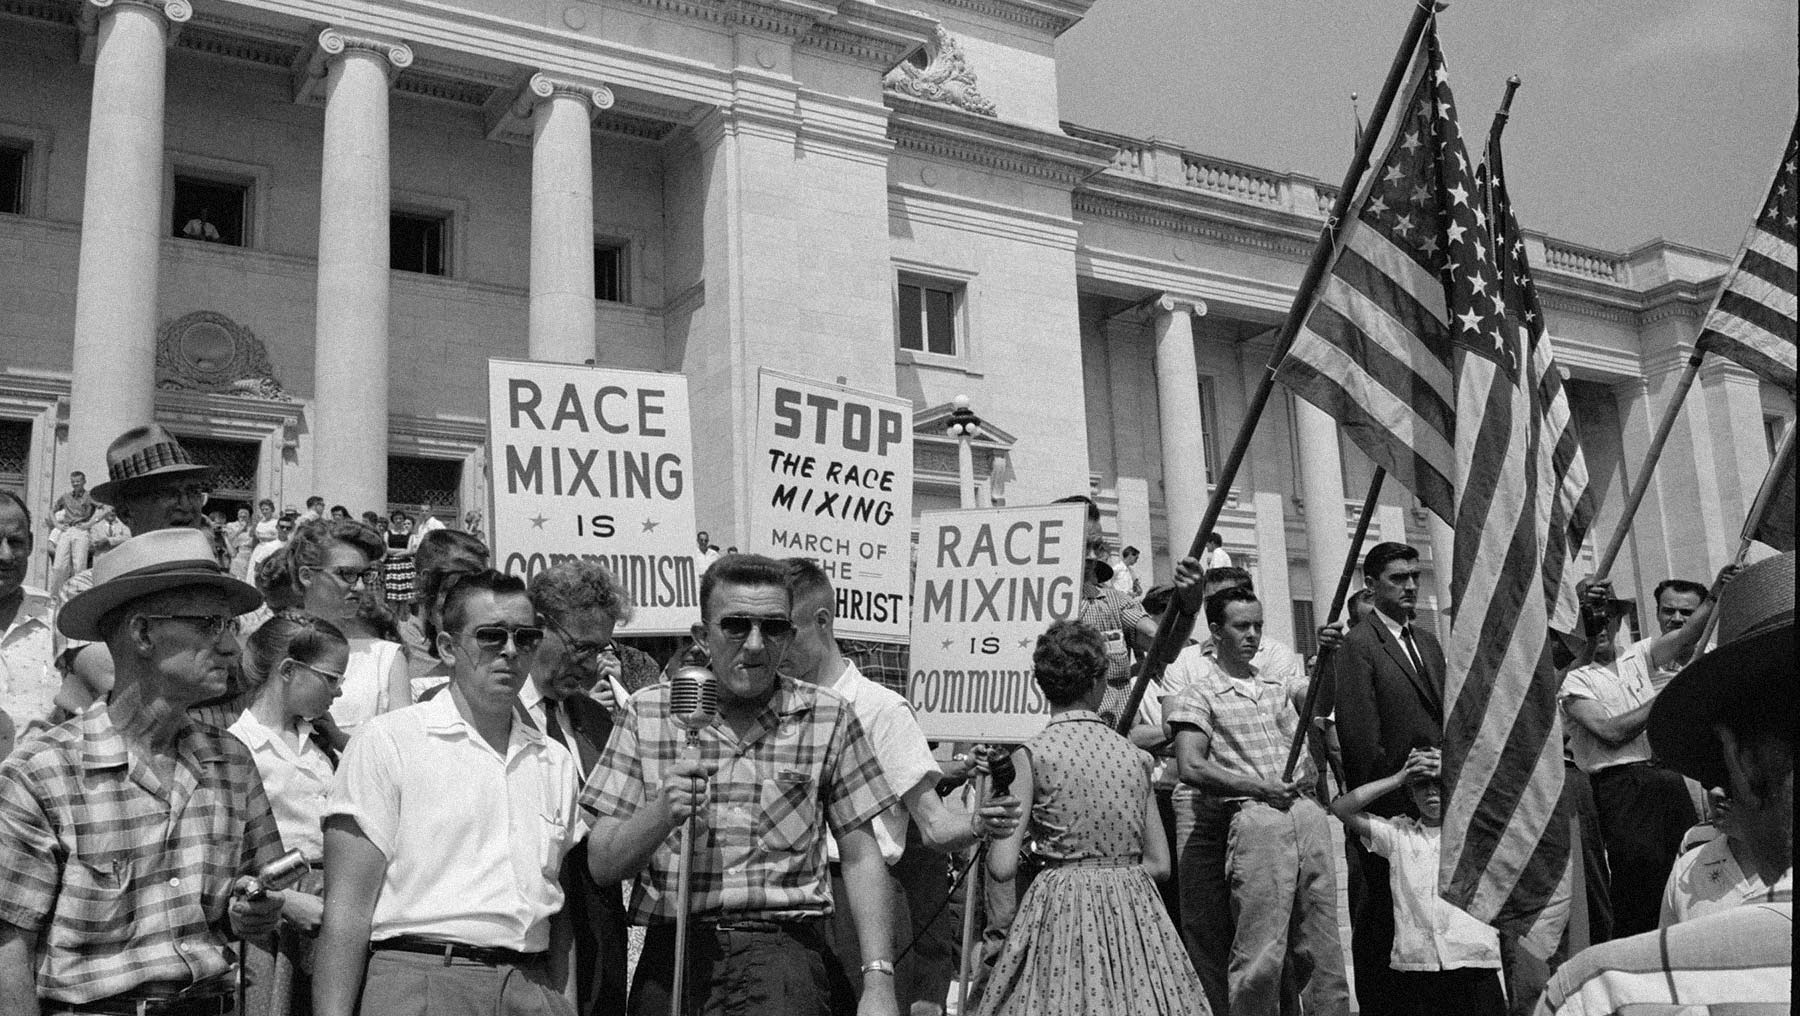 Segregation In America A Report By The Equal Justice